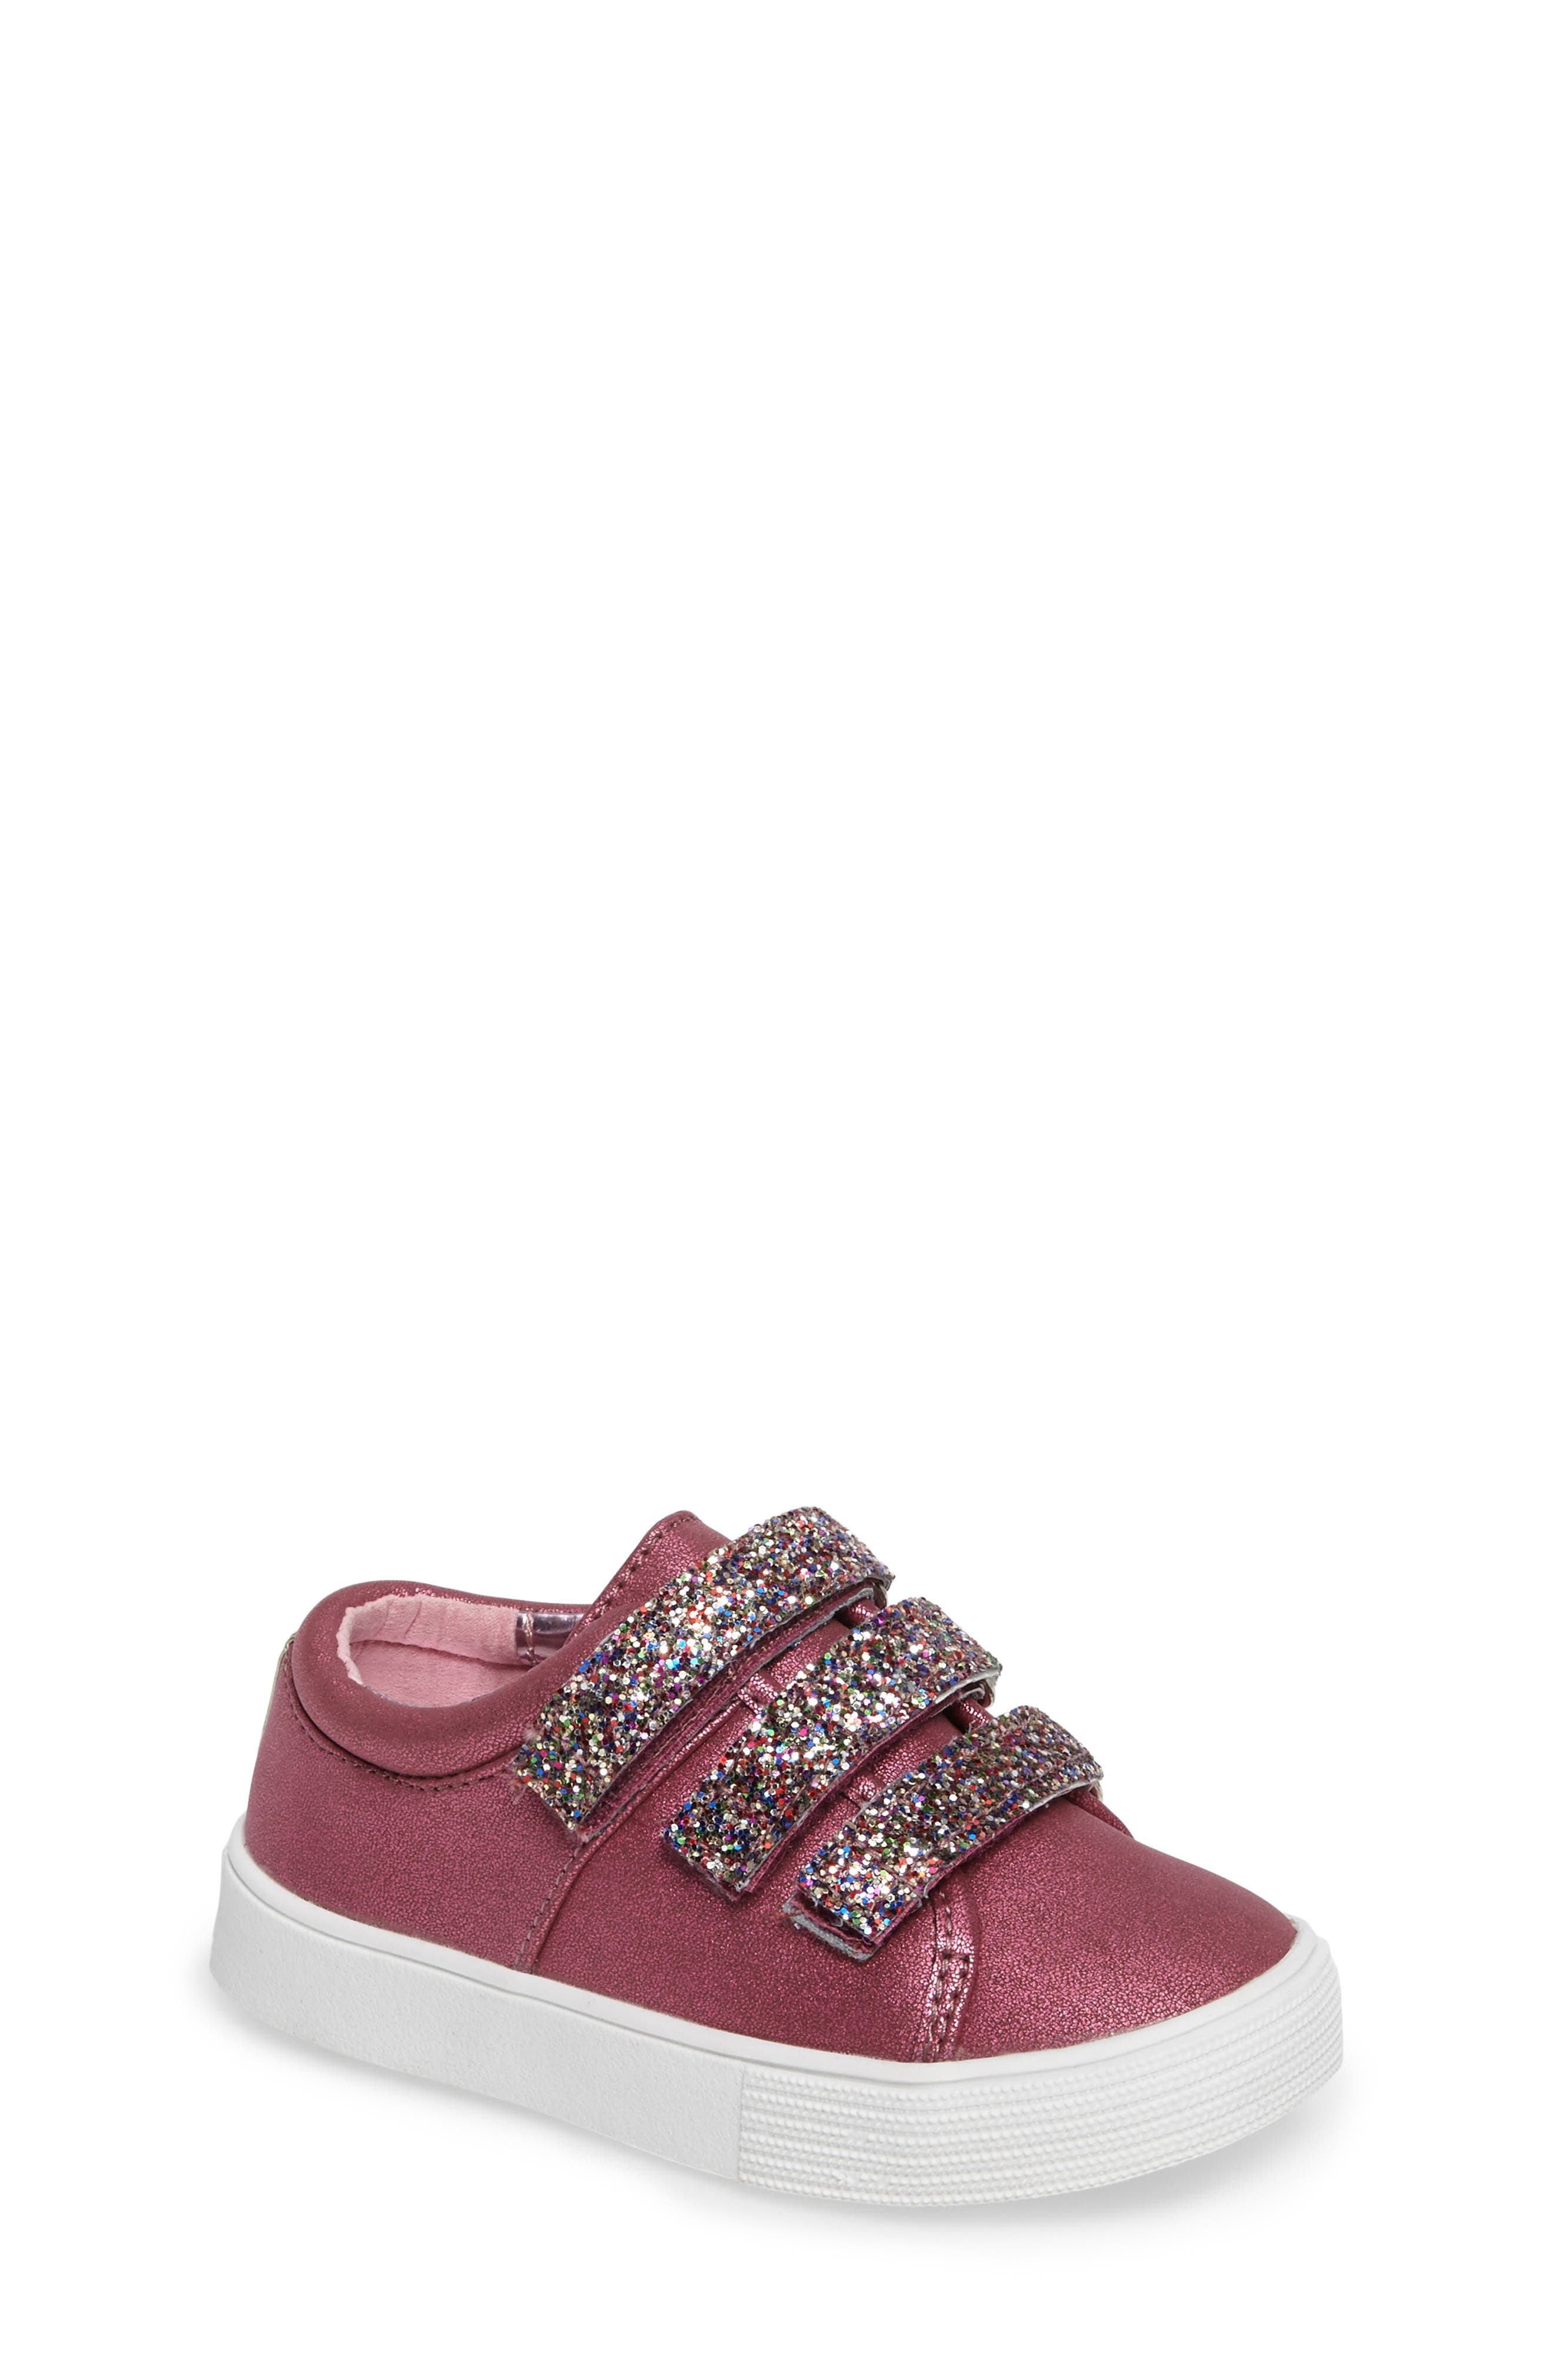 Alternate Image 1 Selected - Kenneth Cole New York Kam Glitter Strap Sneaker (Walker & Toddler)